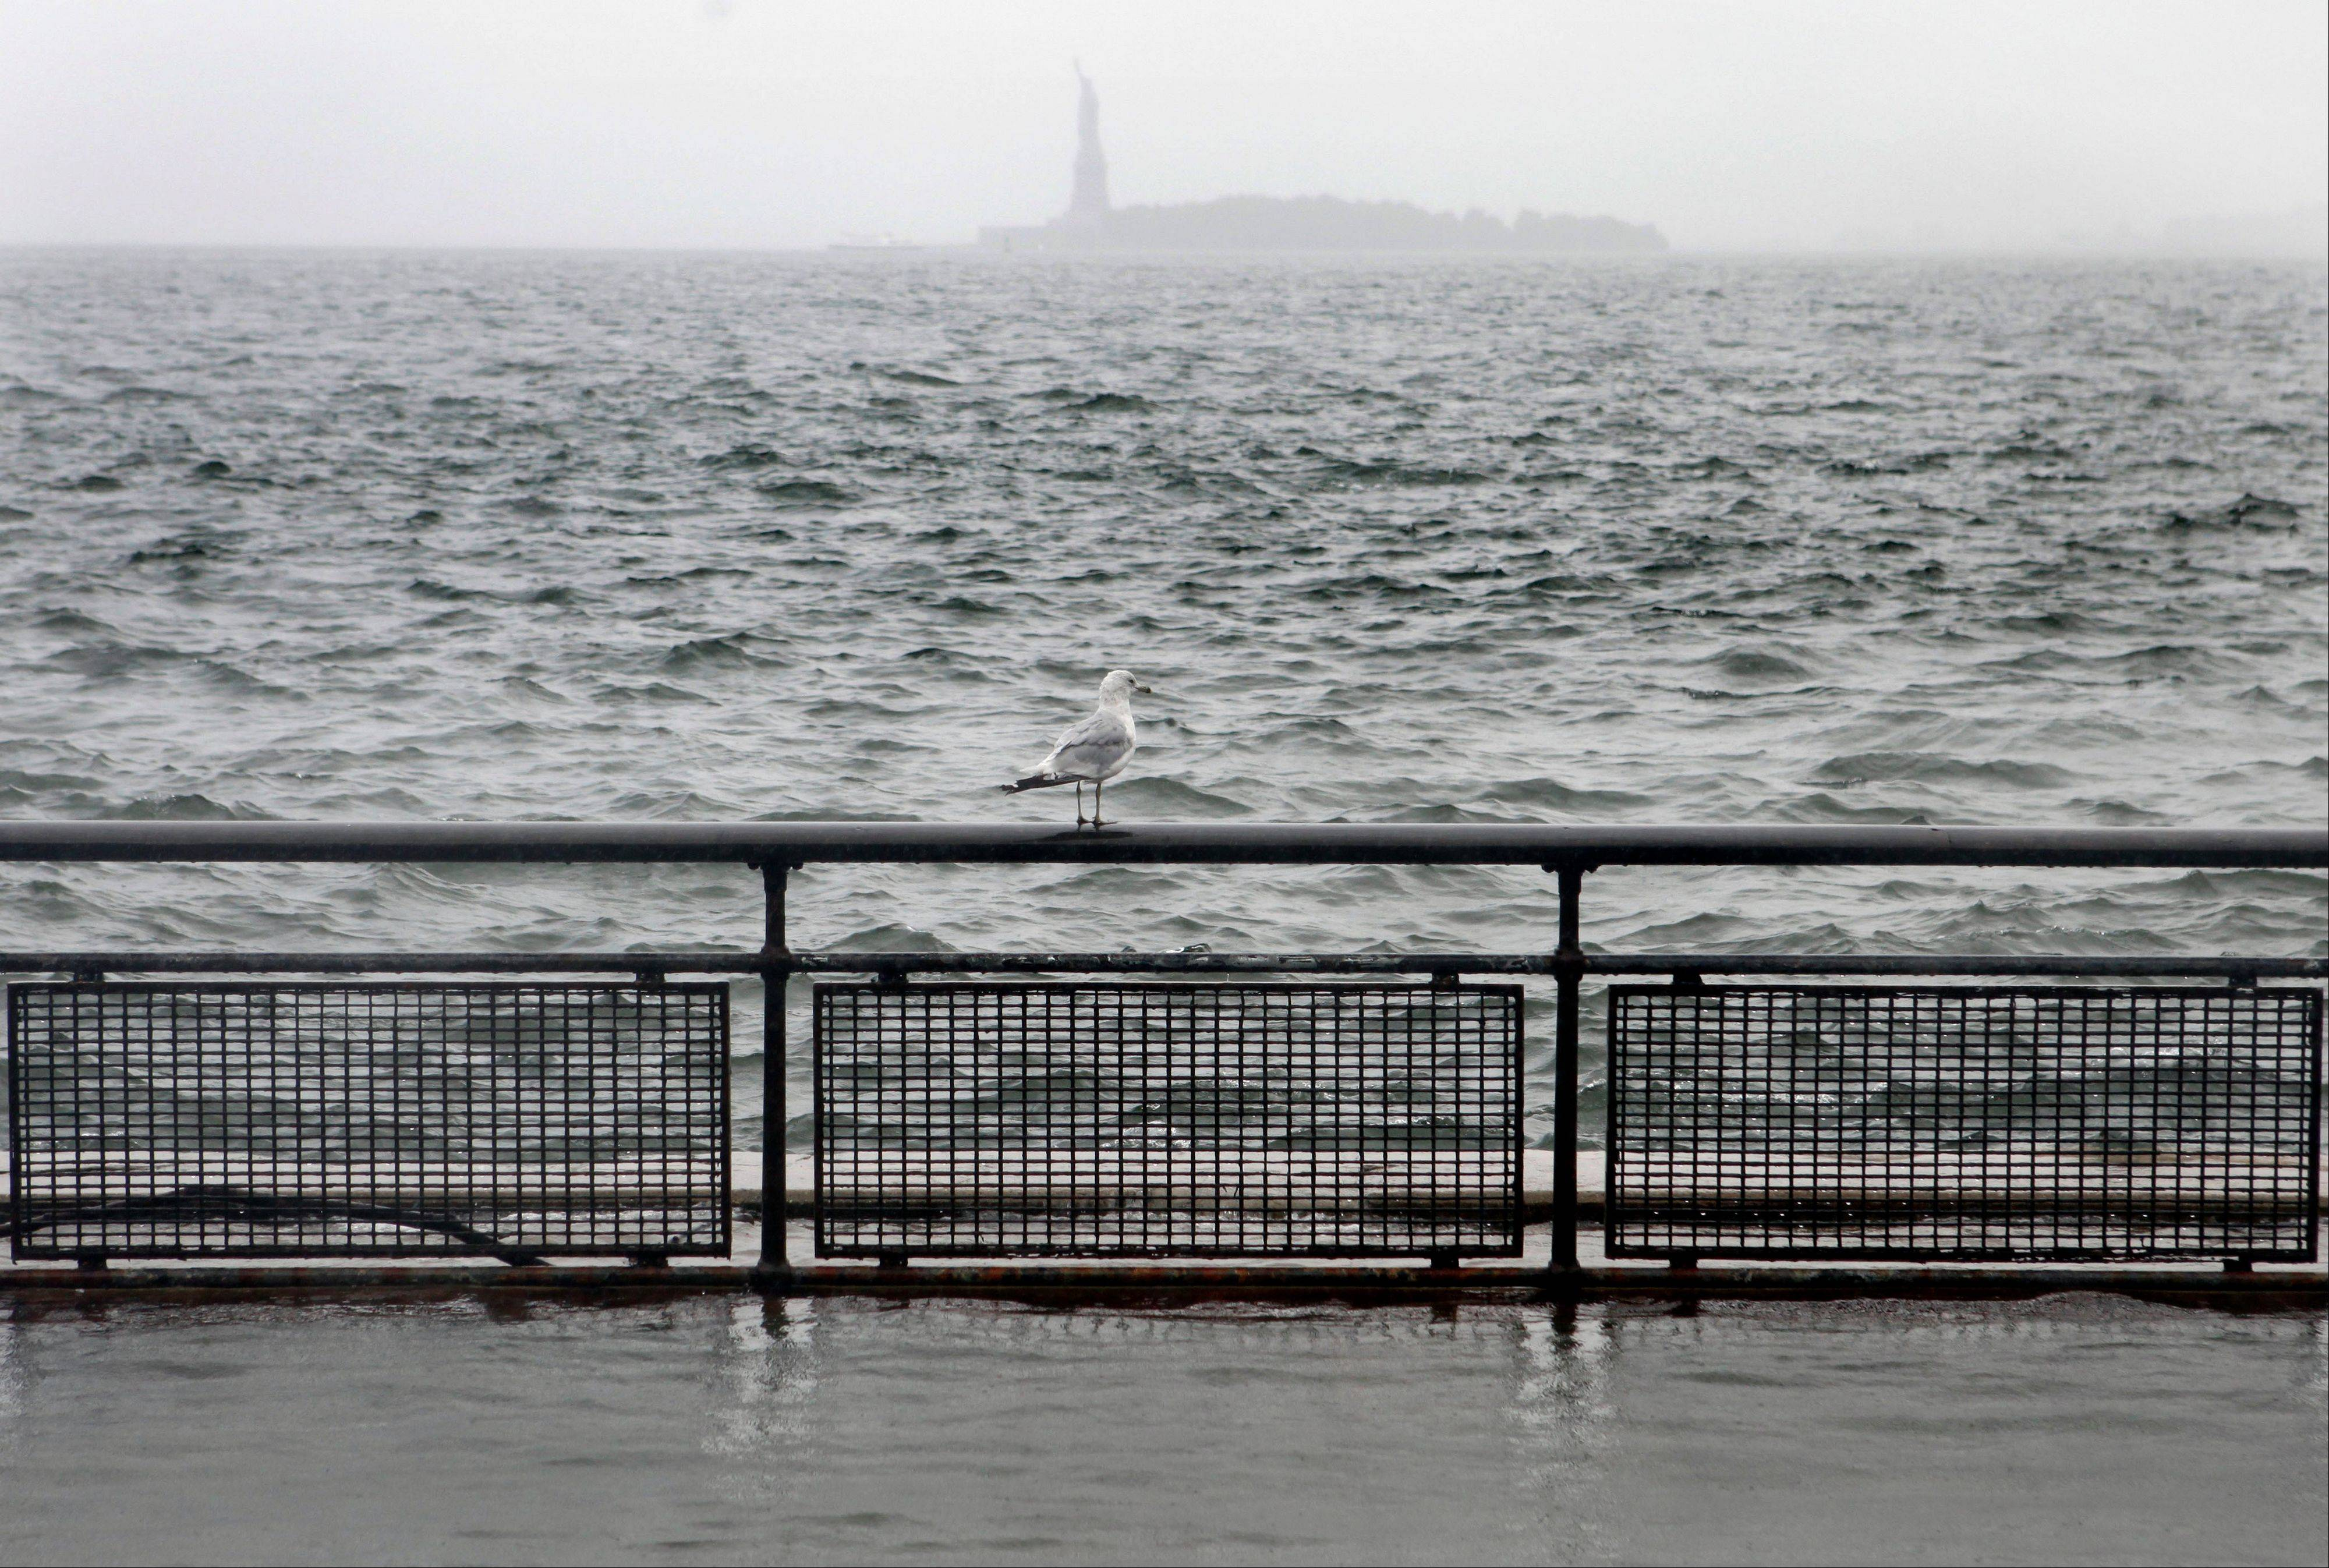 A seagull stands atop a railing along the seawall in Battery Park and New York Harbor as Hurricane Irene passes through New York, Sunday, August 28, 2011. Seawater surged into the streets of Manhattan on Sunday as Tropical Storm Irene slammed into New York, downgraded from a hurricane but still unleashing furious wind and rain. The flooding threatened Wall Street and the heart of the global financial network.